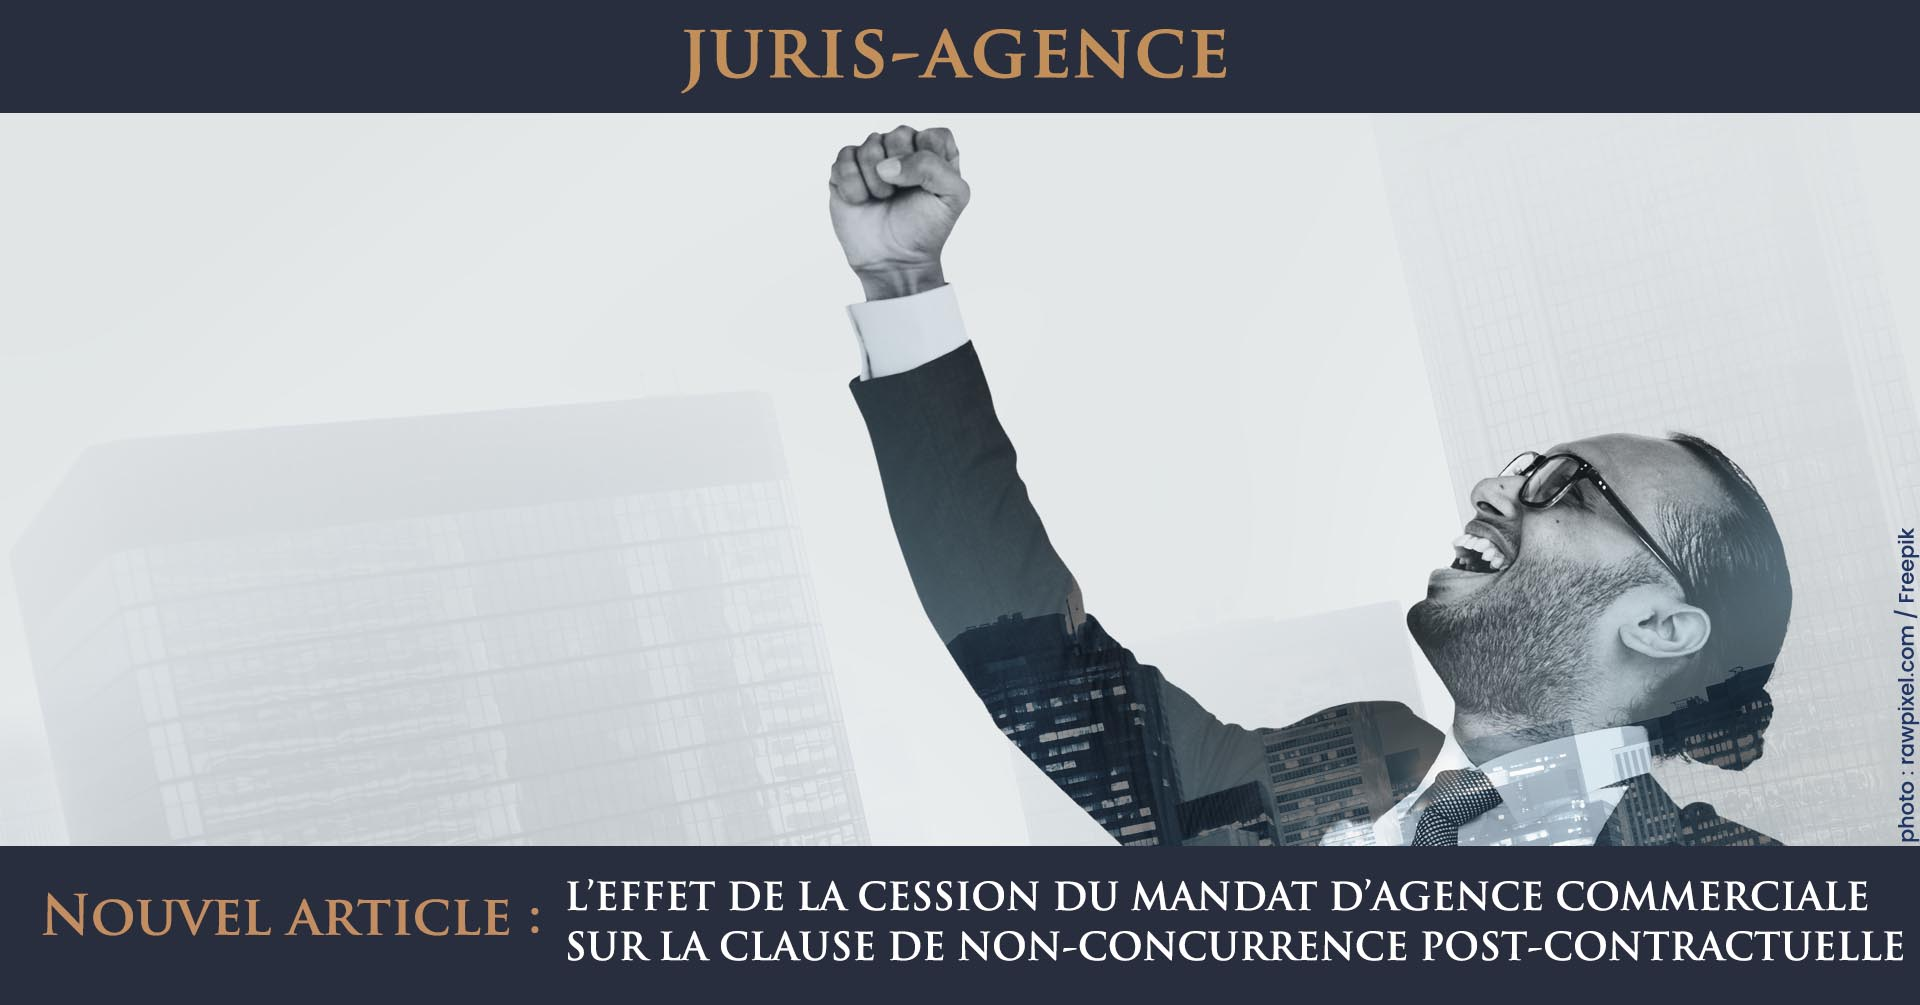 cession mandat agence commerciale clause non-concurrence